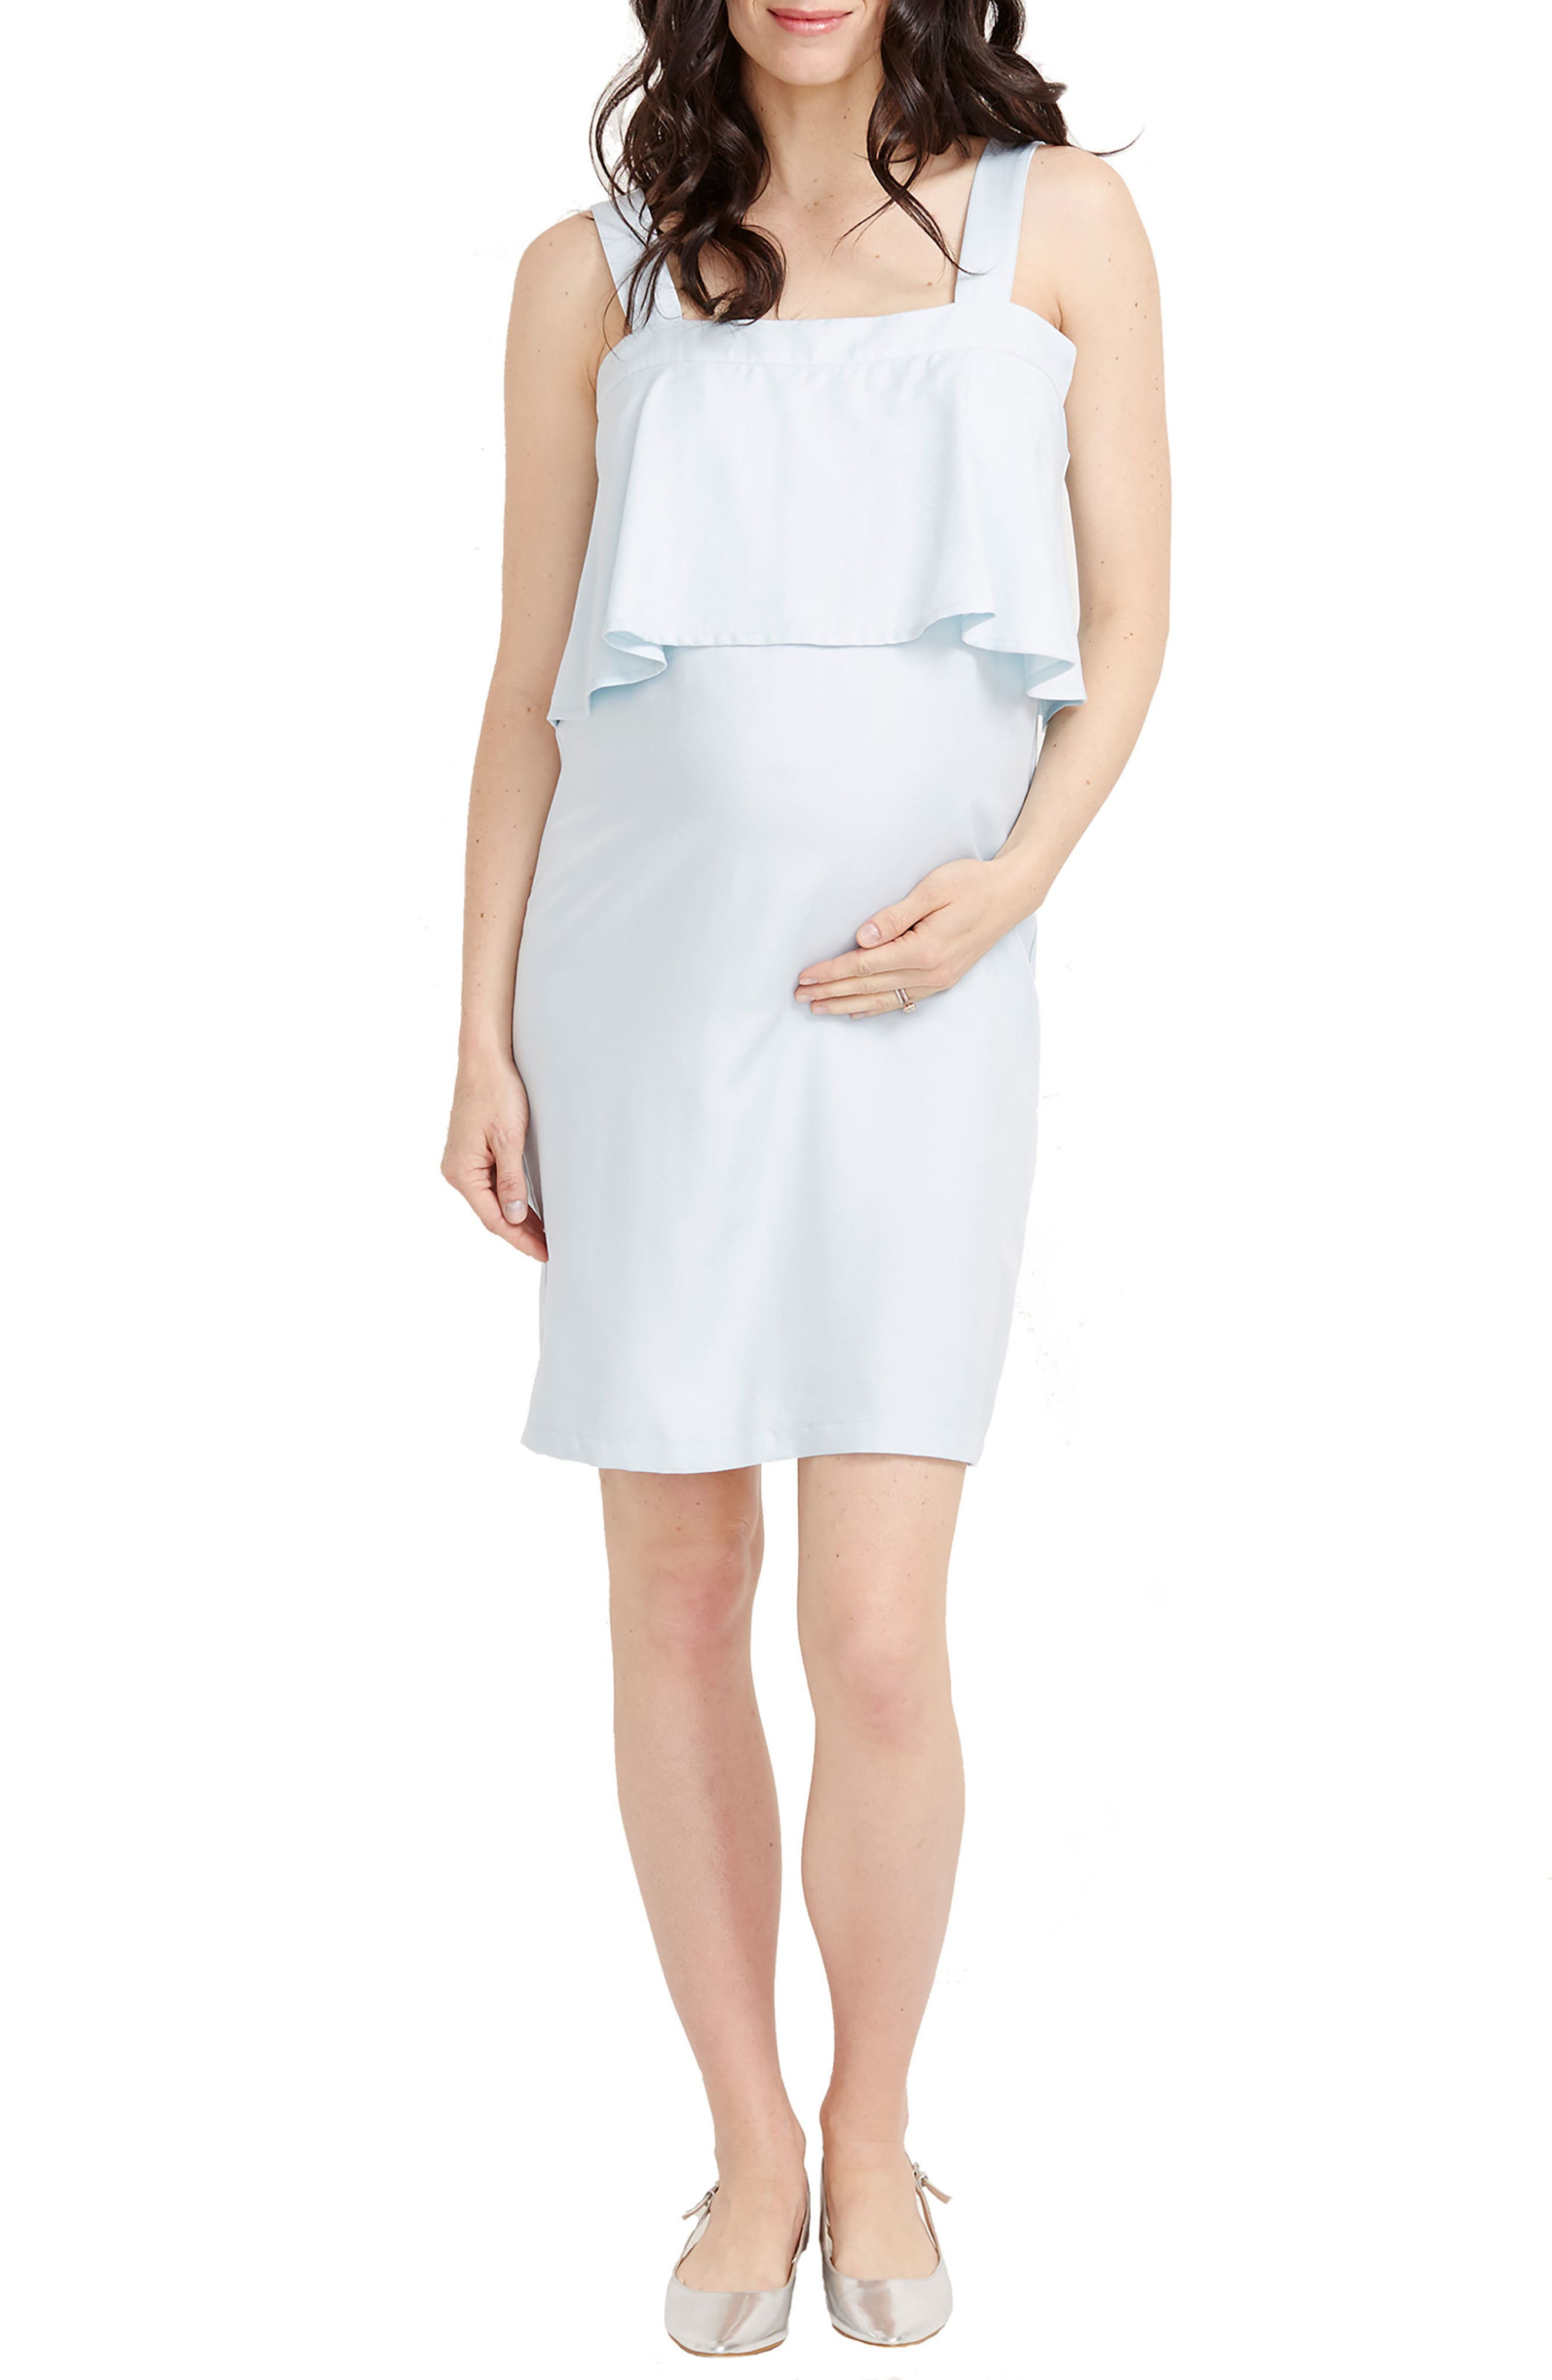 ROSIE POPE Mia Maternity Dress, Main, color, 450